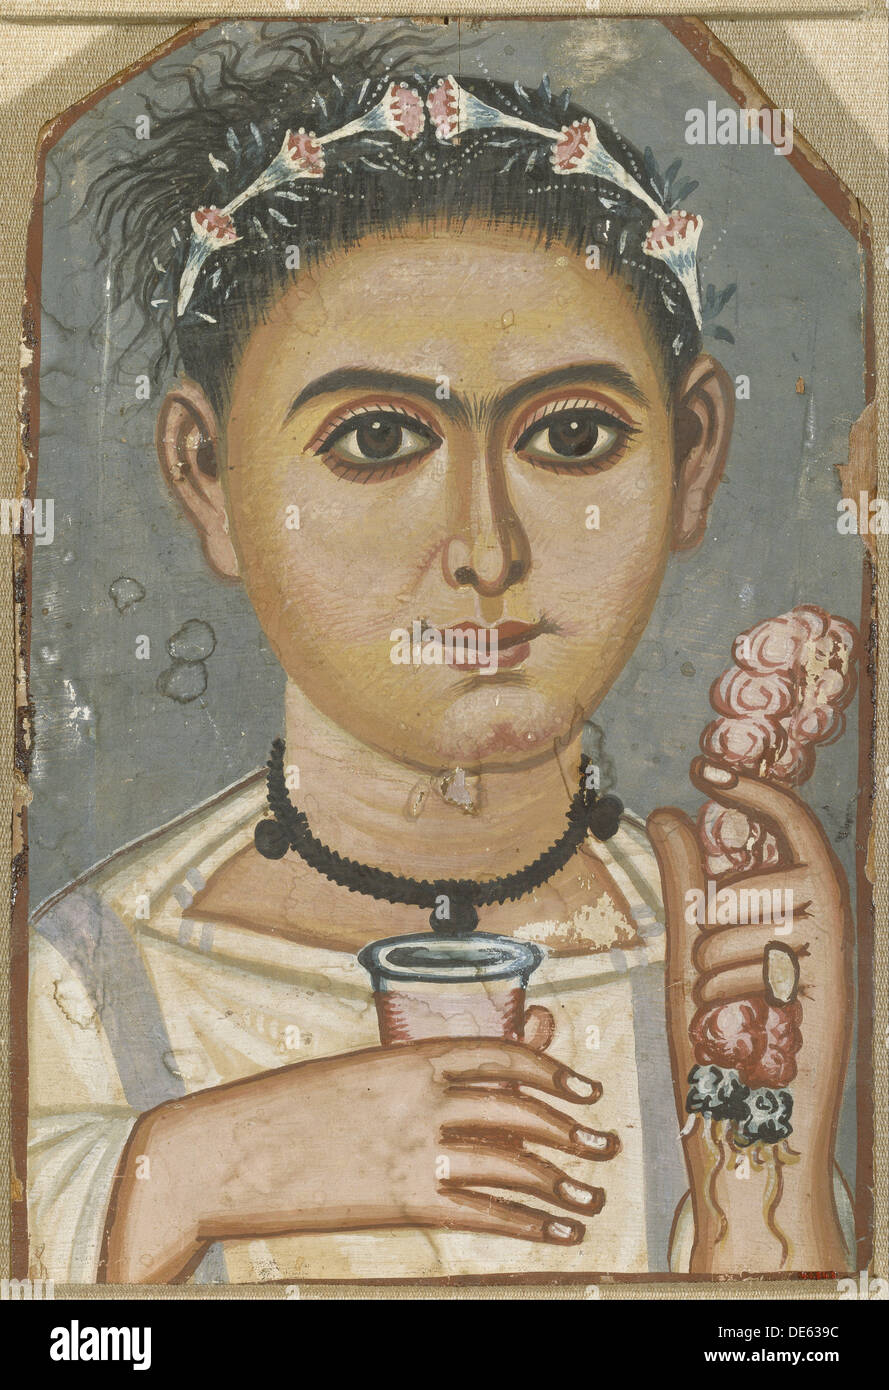 Boy with a Floral Garland in His Hair, ca 200-230. Artist: Fayum mummy portraits - Stock Image